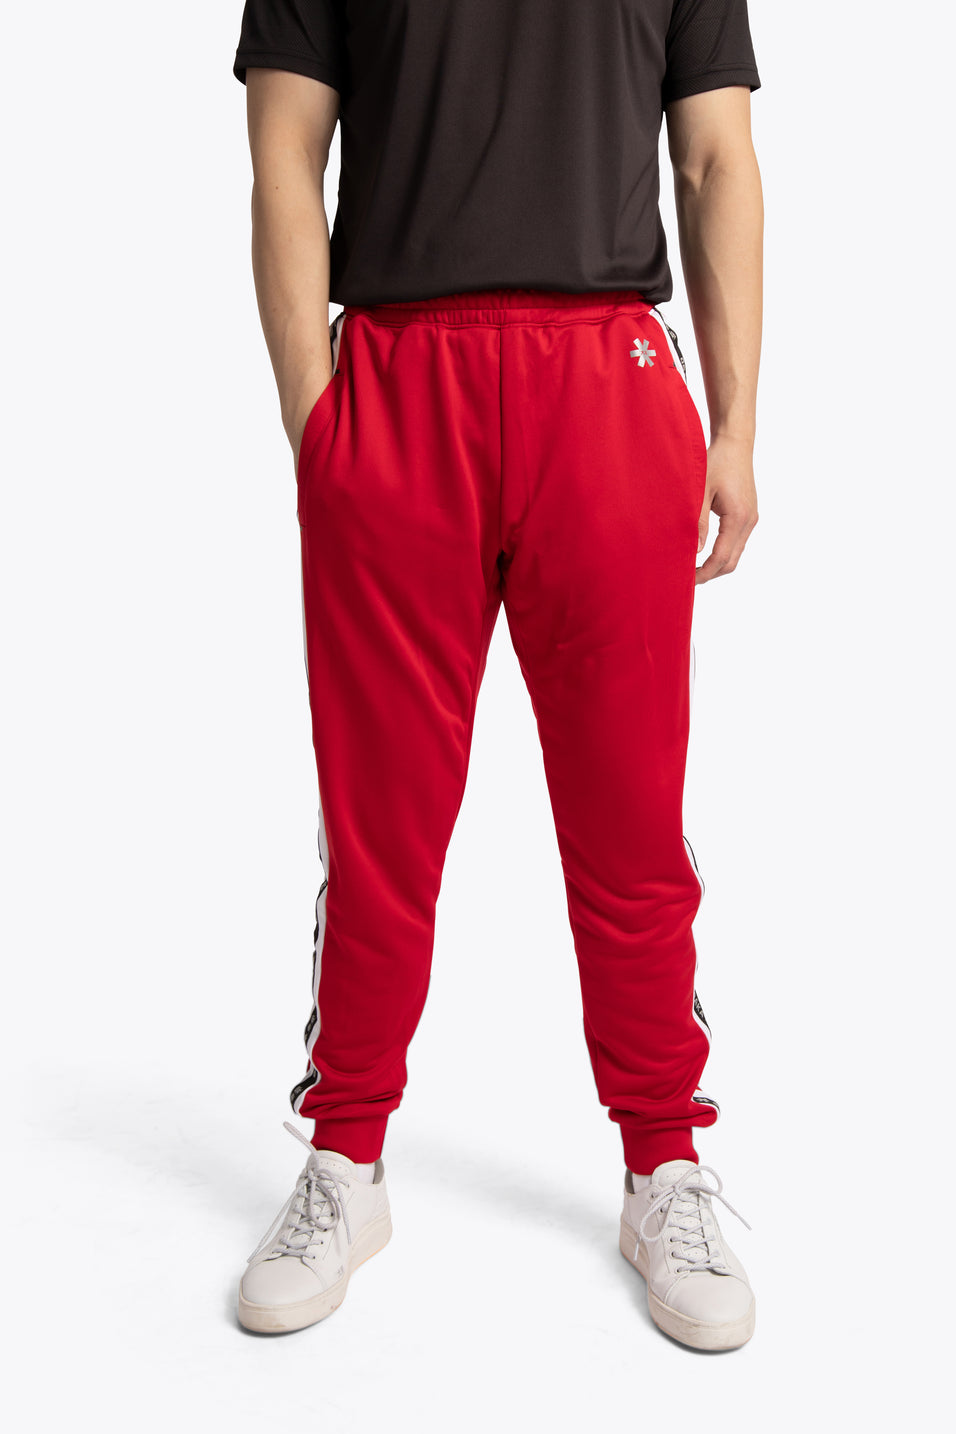 osaka training sweatpants red